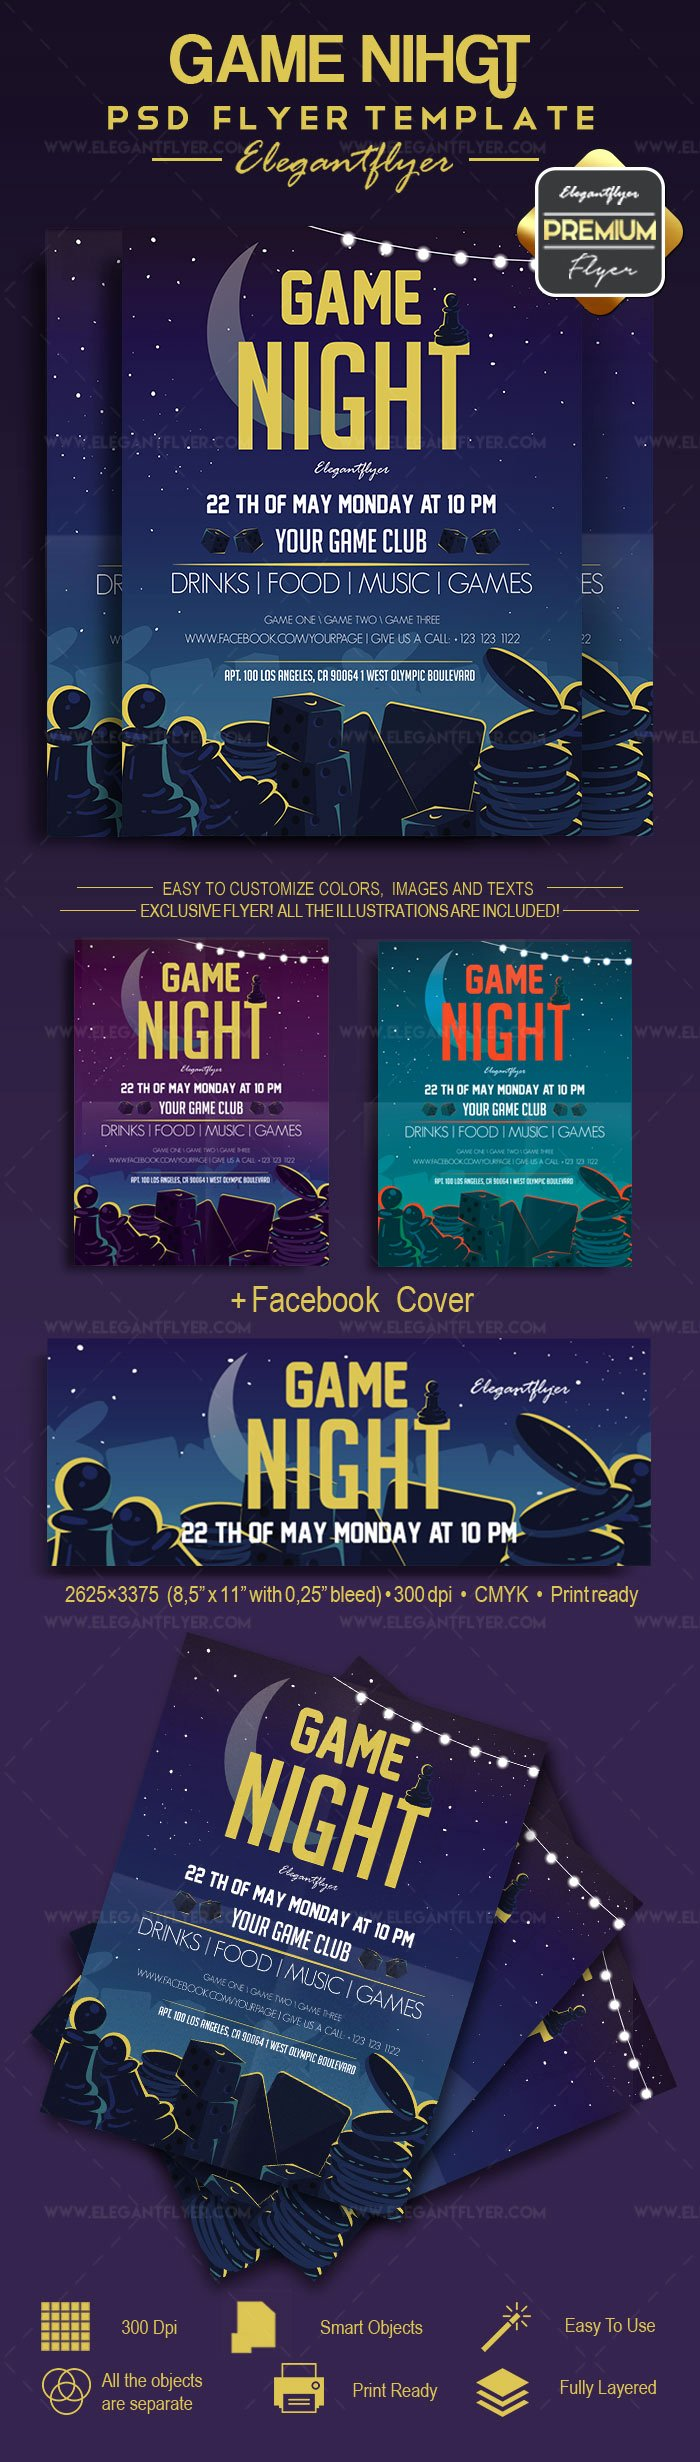 Game Night Flyer Template Awesome Game Night – Flyer Psd Template – by Elegantflyer